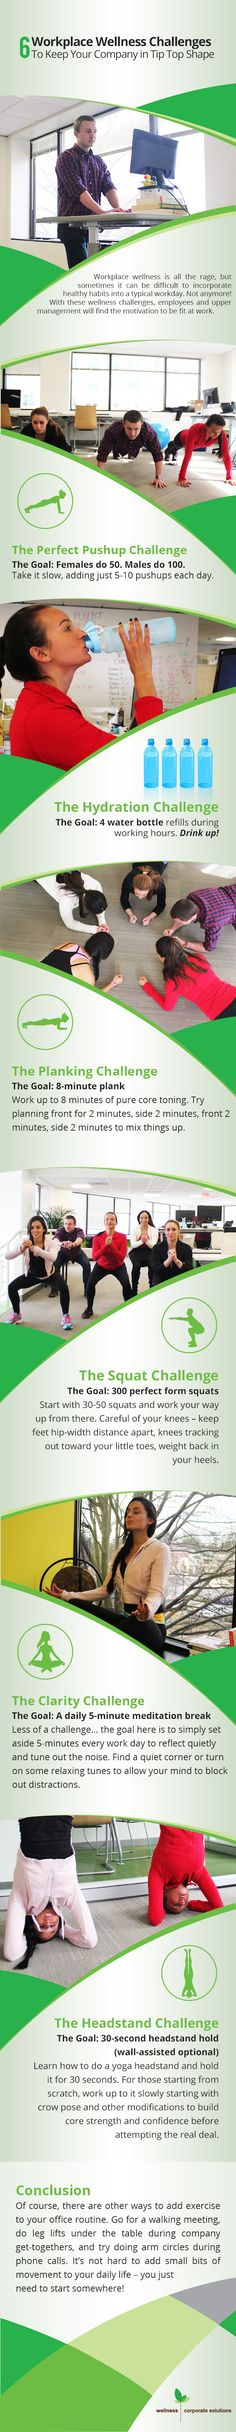 6 Workplace Wellness Challenges- Keep Your Company in Tip Top Shape infographic